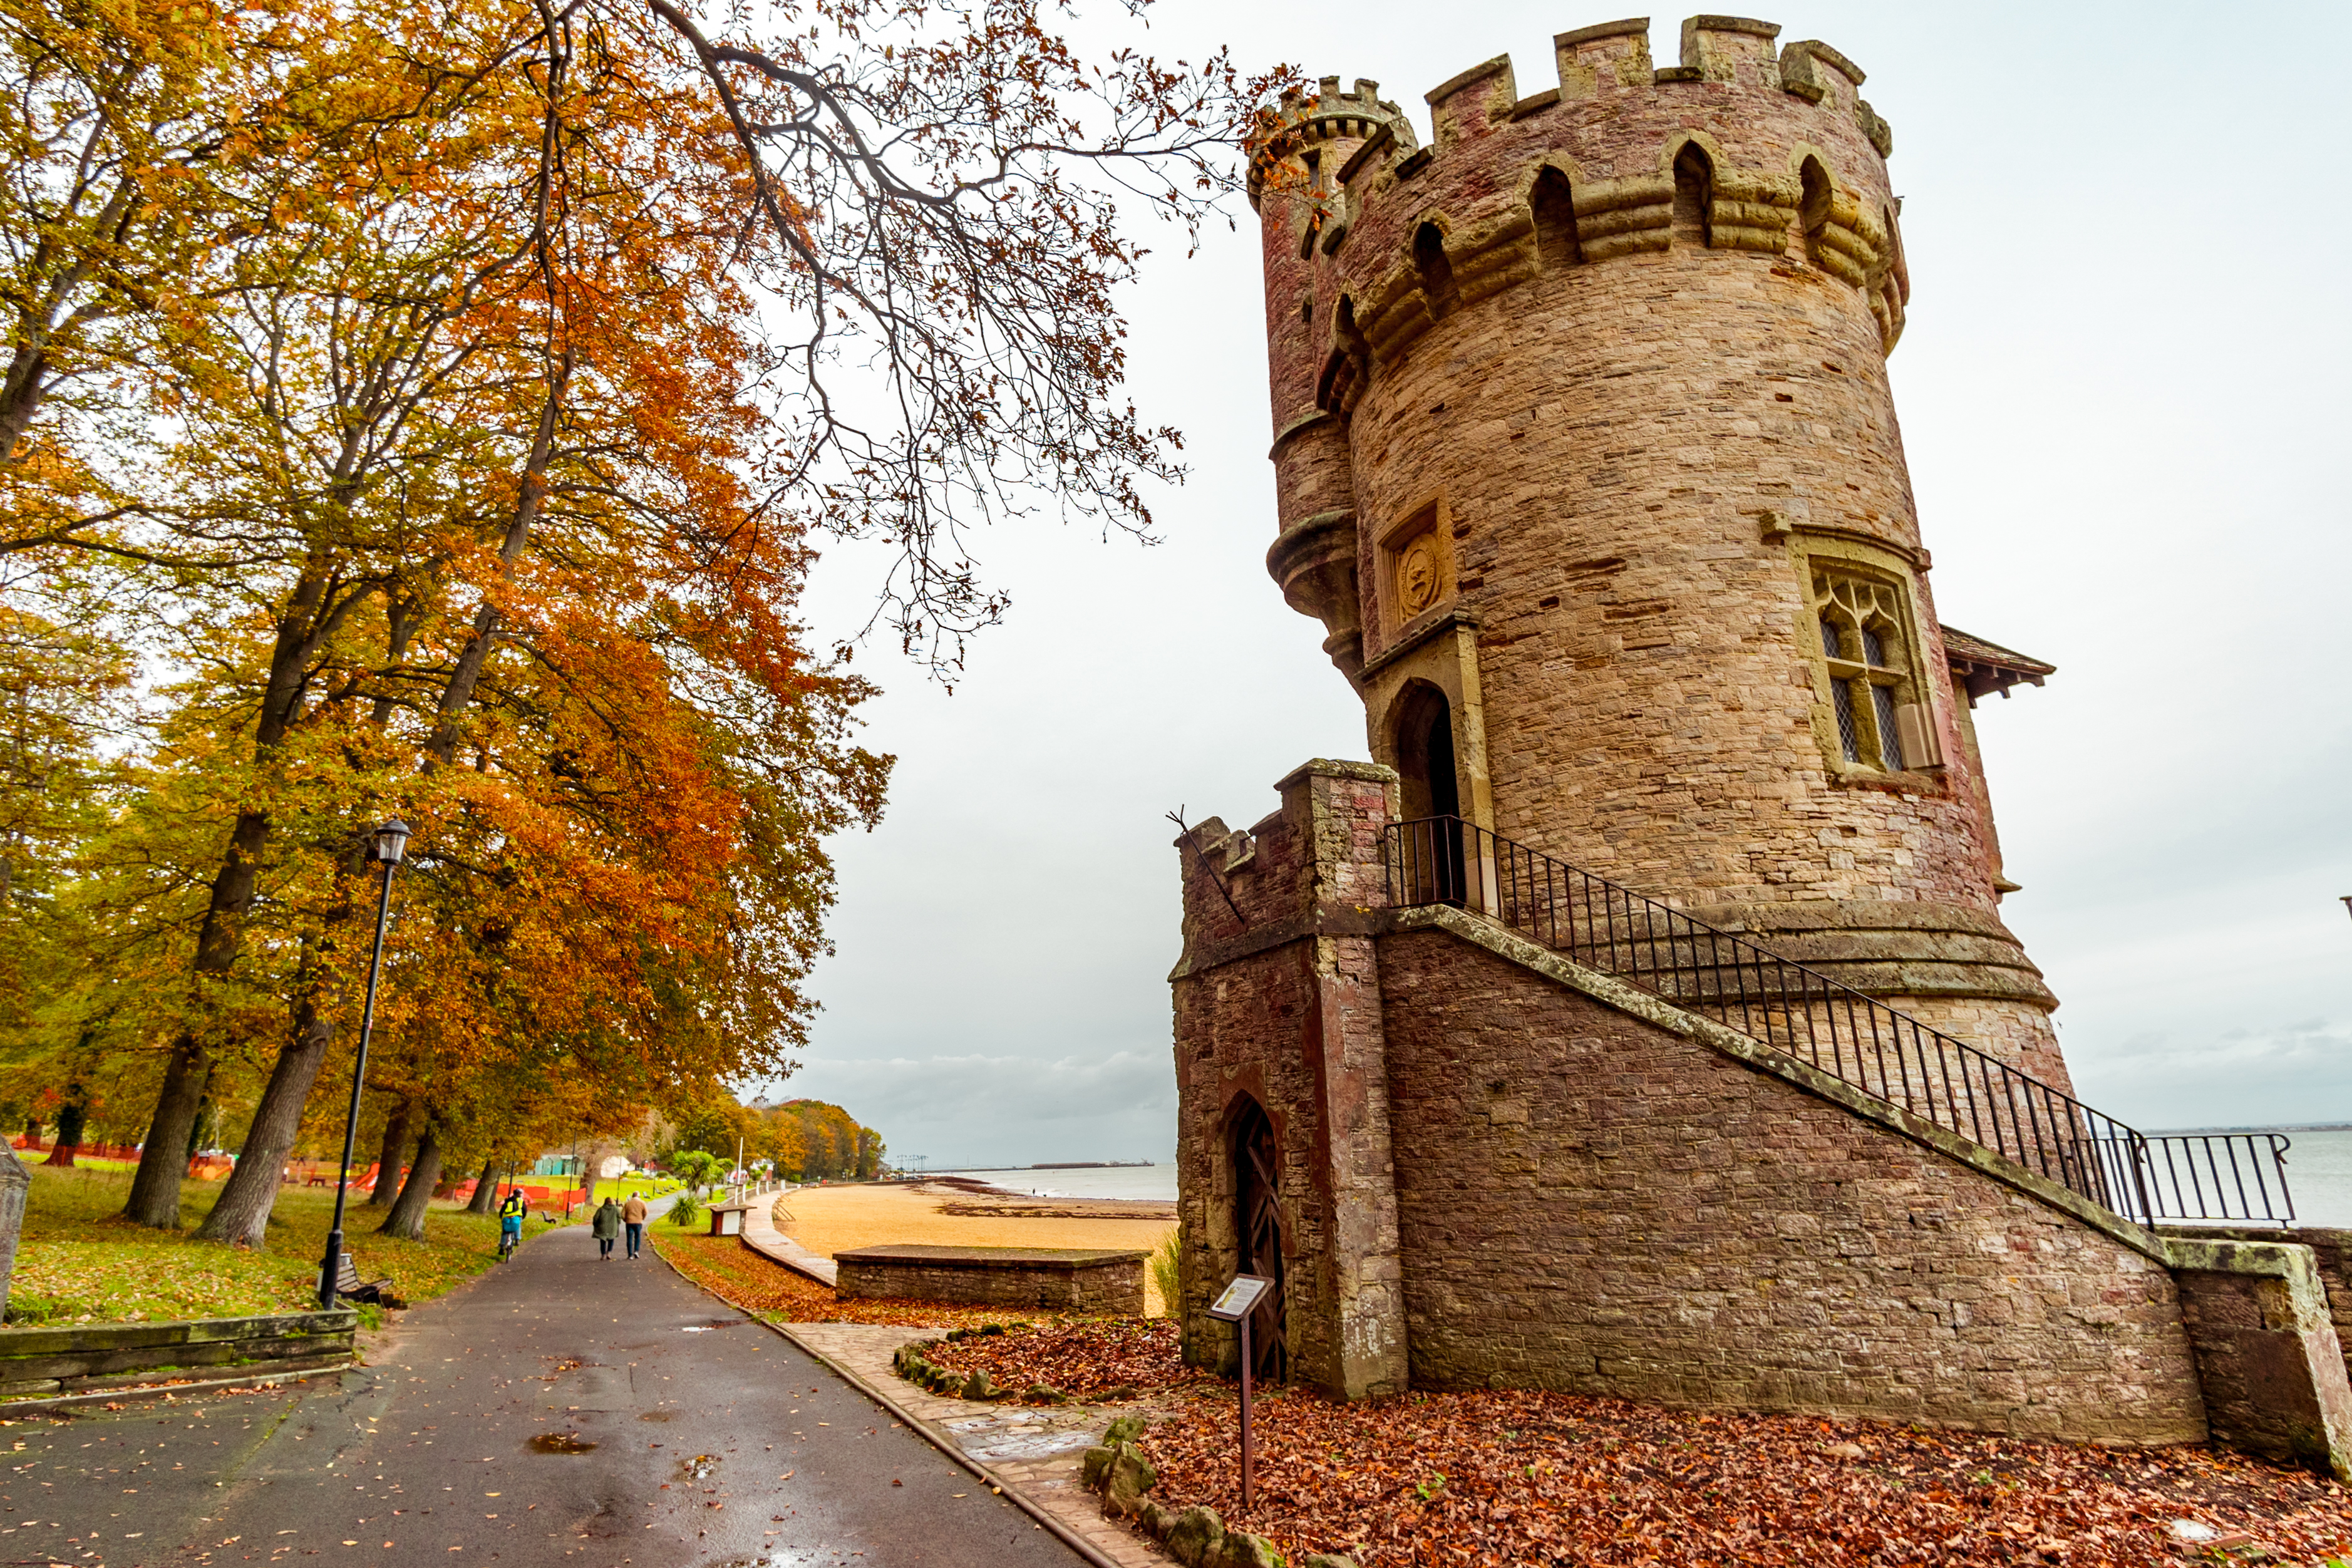 Appley Tower in Ryde on the Isle of Wight, in autumn, next to trees and a path